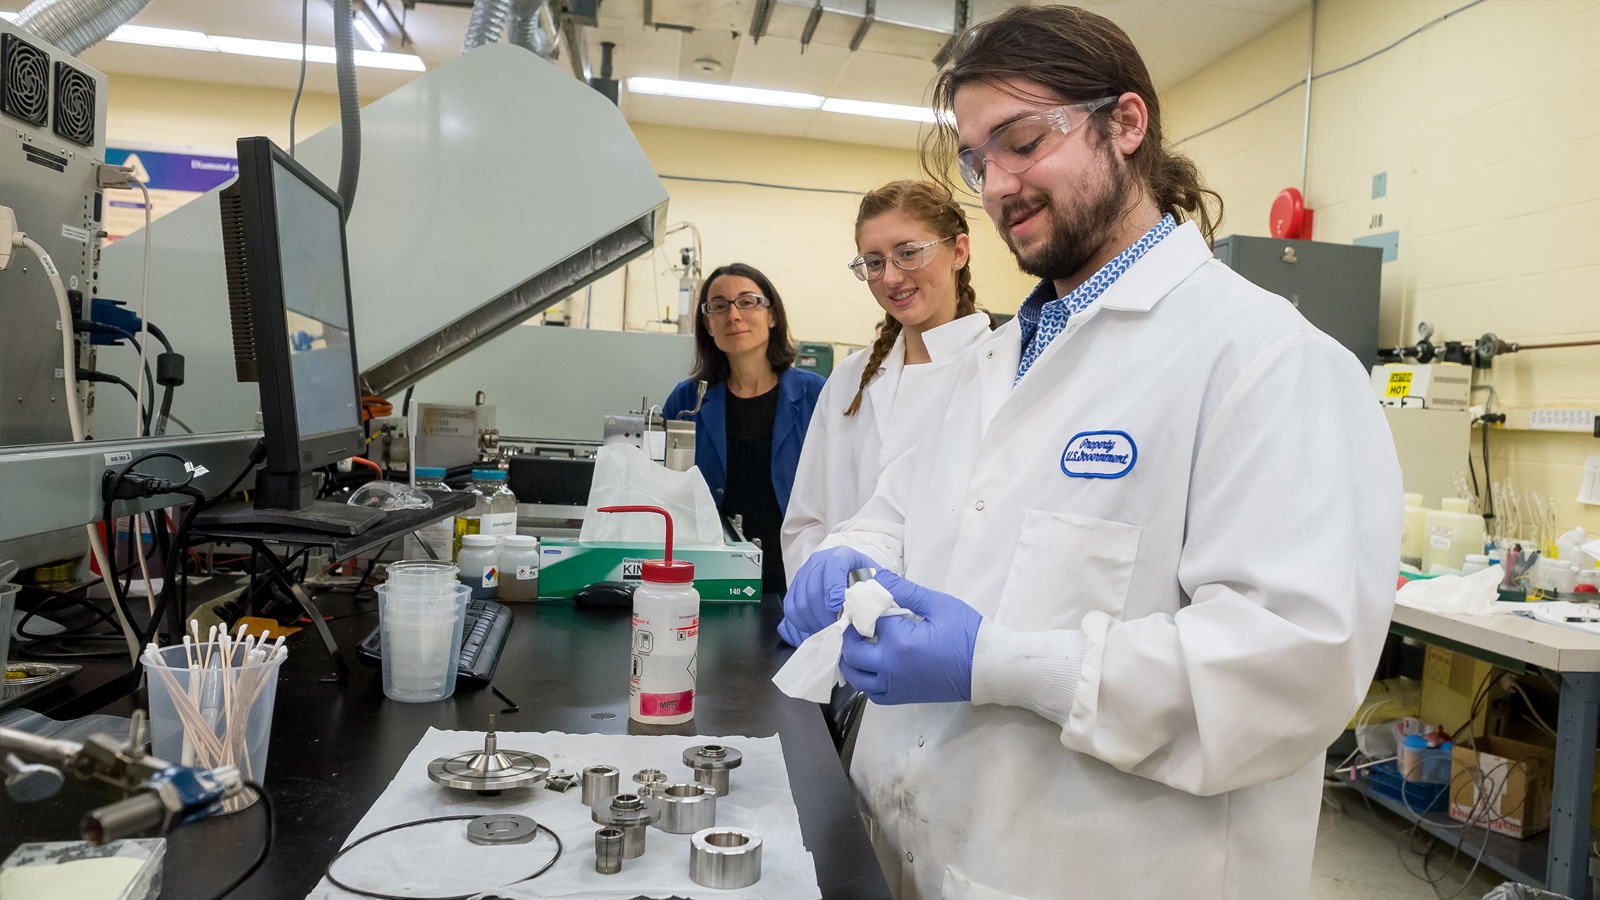 Maria De La Cinta Lorenzo Martin, an Argonne scientist, oversees Northwestern University summer interns Ally O'Donnell, a senior in mechanical engineering, and Jacob Hechter, a junior in materials science, as they prepare wind turbine components for testing. (Image by Argonne National Laboratory.)